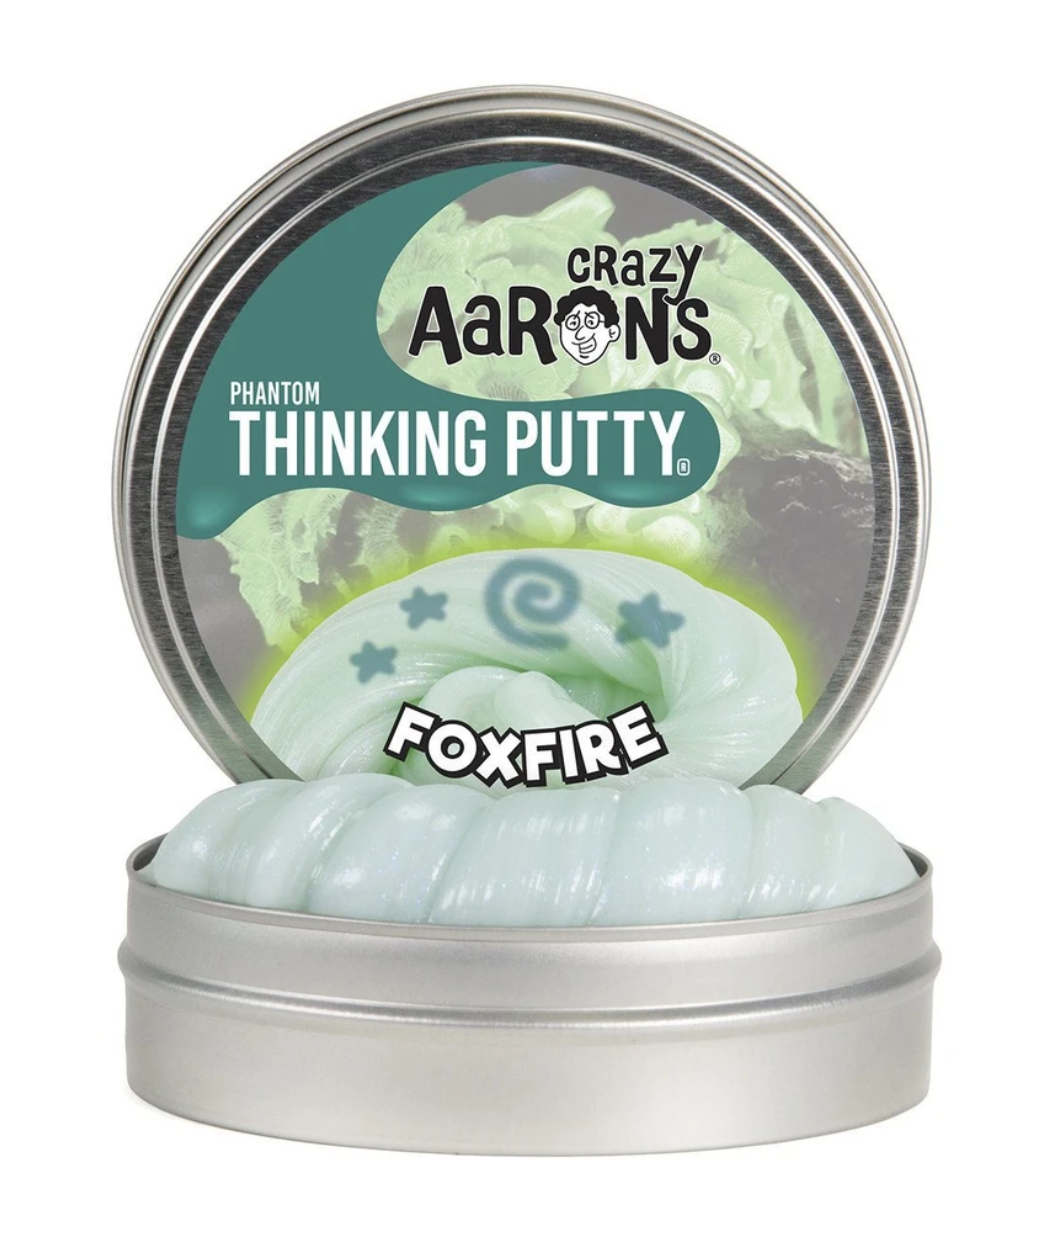 crazy aarons thinking putty  poppable tearable firm texture non-toxic silicon never dries out foxfire eerie glow phosphorescent fairies will'o'wisp glimmering light green bright blue green edge dark glow charger ultraviolet soft